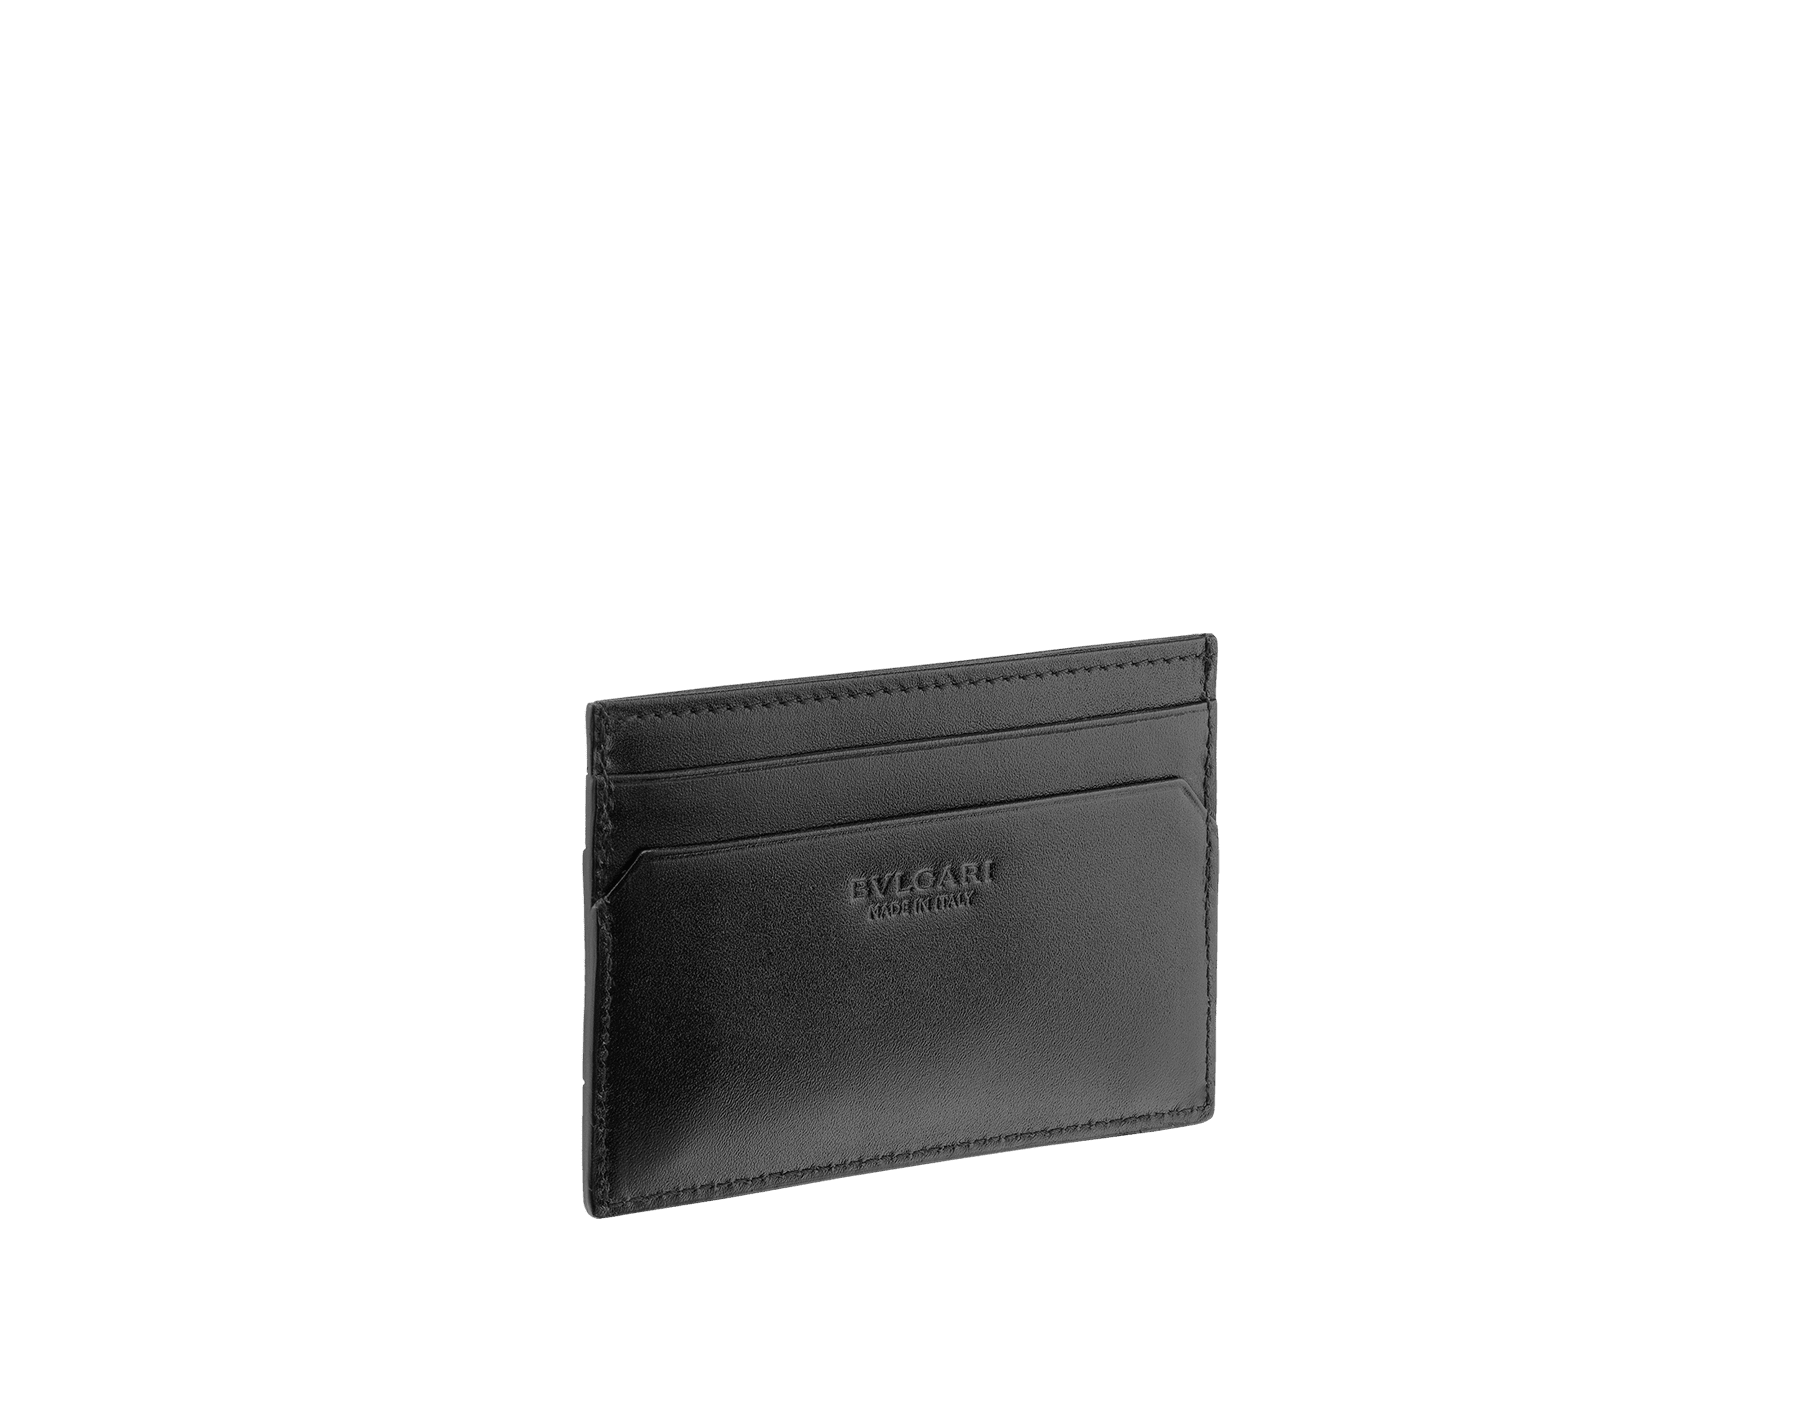 Credit card holder in black grazed calf leather and black calf leather. Bulgari logo on metal plate featuring the Scaglie motif finished in dark ruthenium. Four credit card slots and one compartment. 280883 image 2